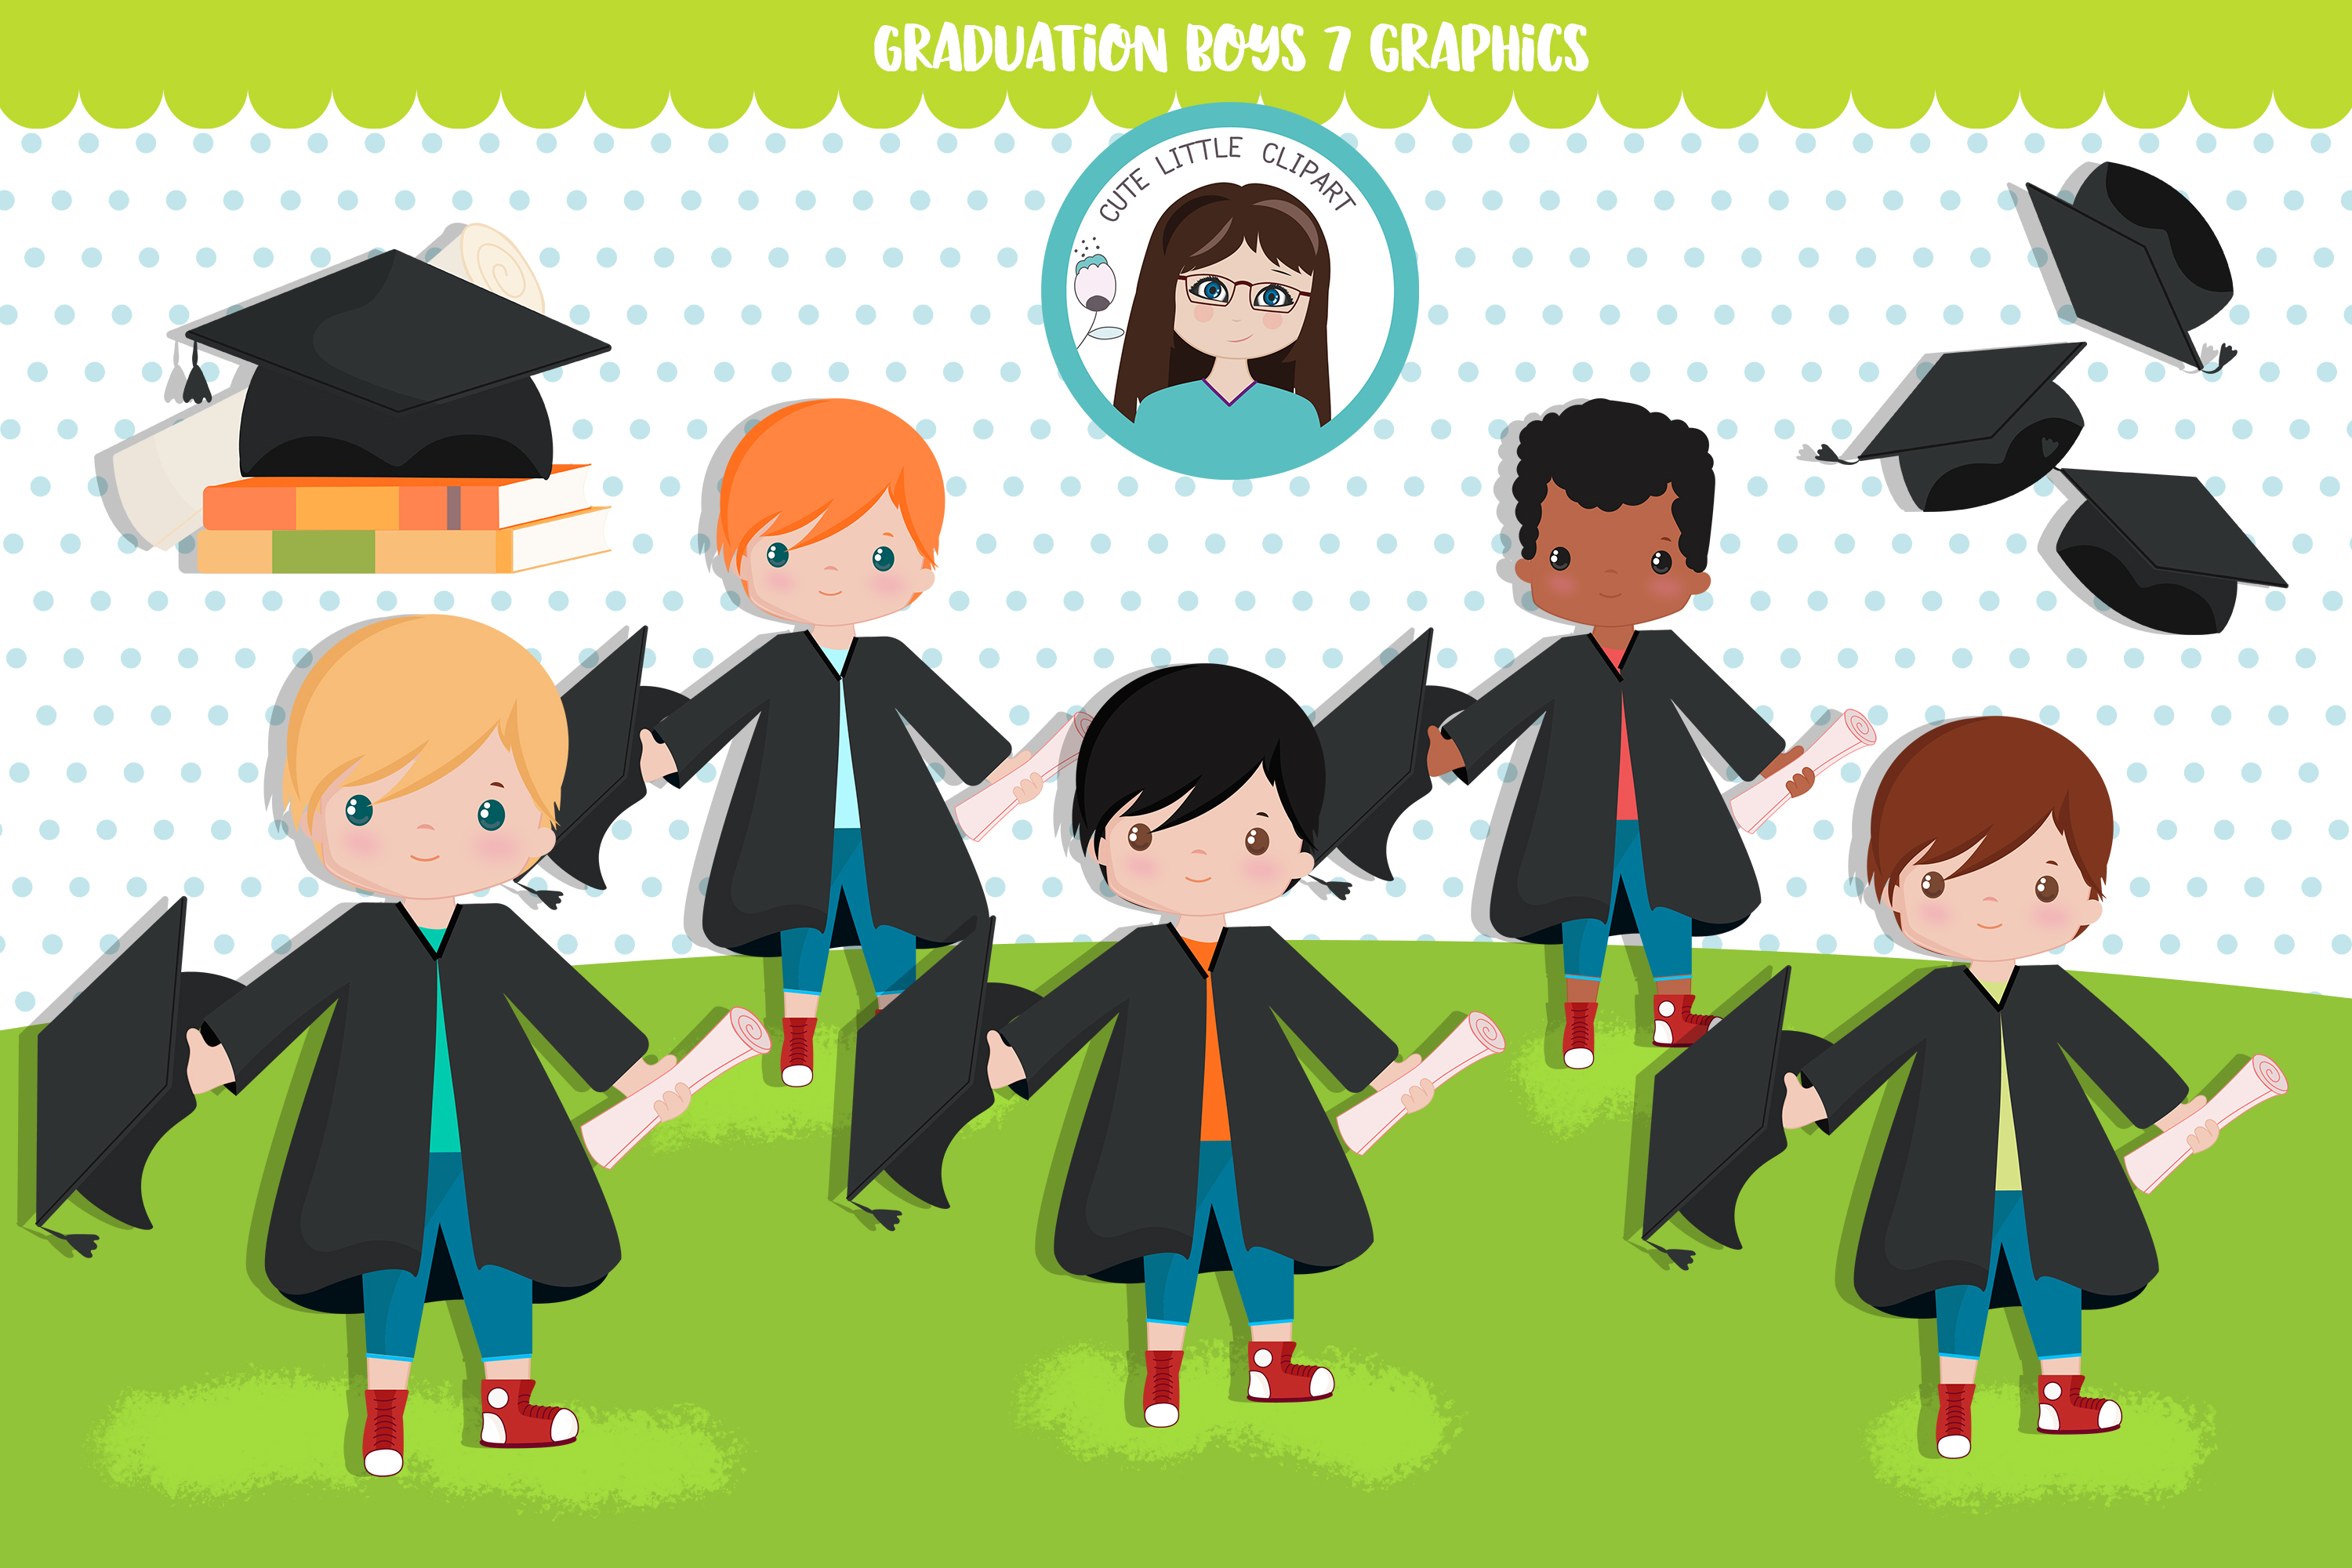 Download Free Graduation Boys Graphic By Cutelittleclipart Creative Fabrica for Cricut Explore, Silhouette and other cutting machines.